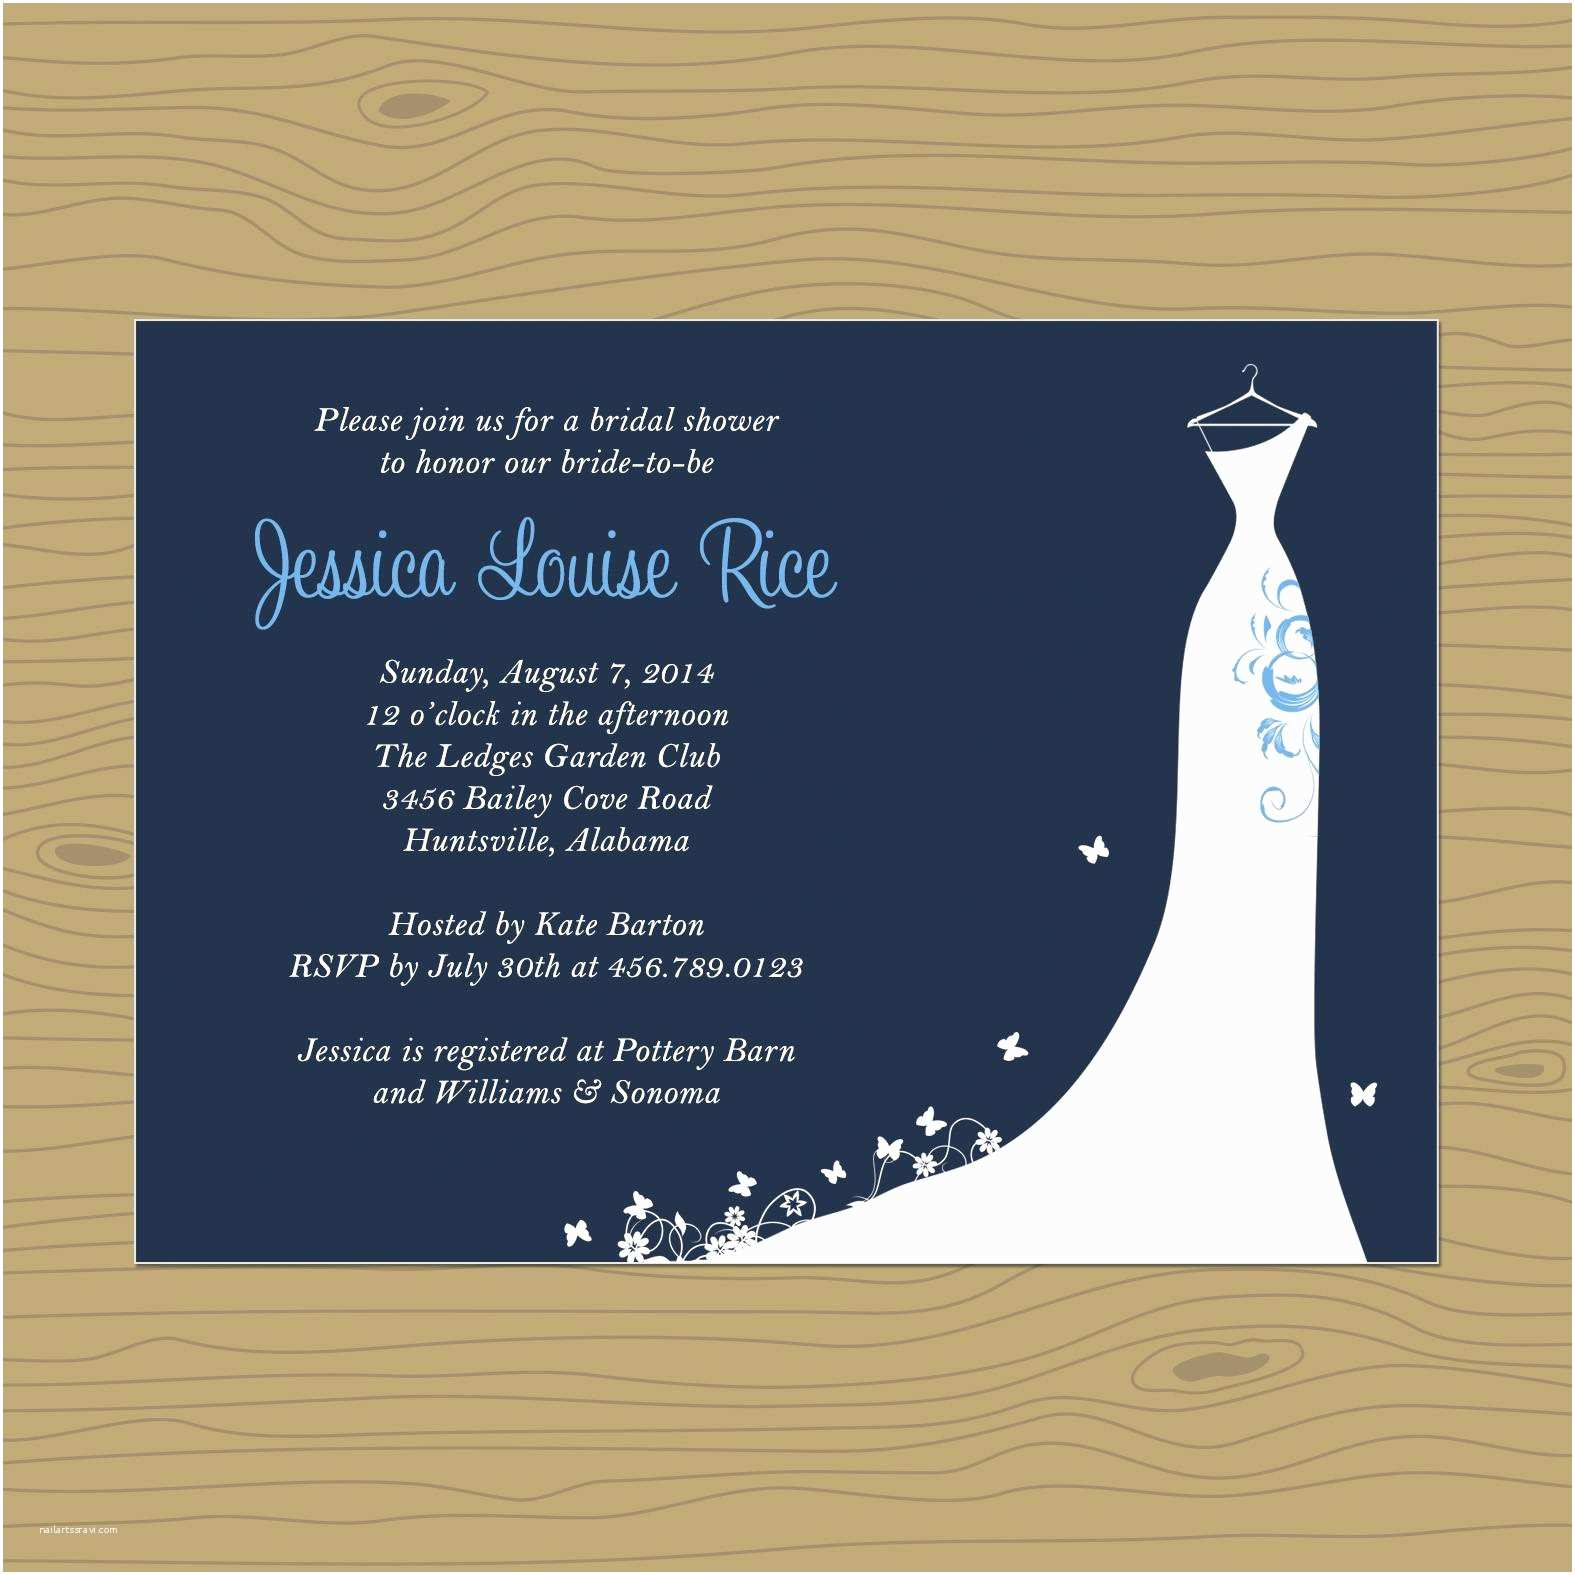 Free Bridal Shower Invitation Templates Bridal Shower Invitation Templates Bridal Shower